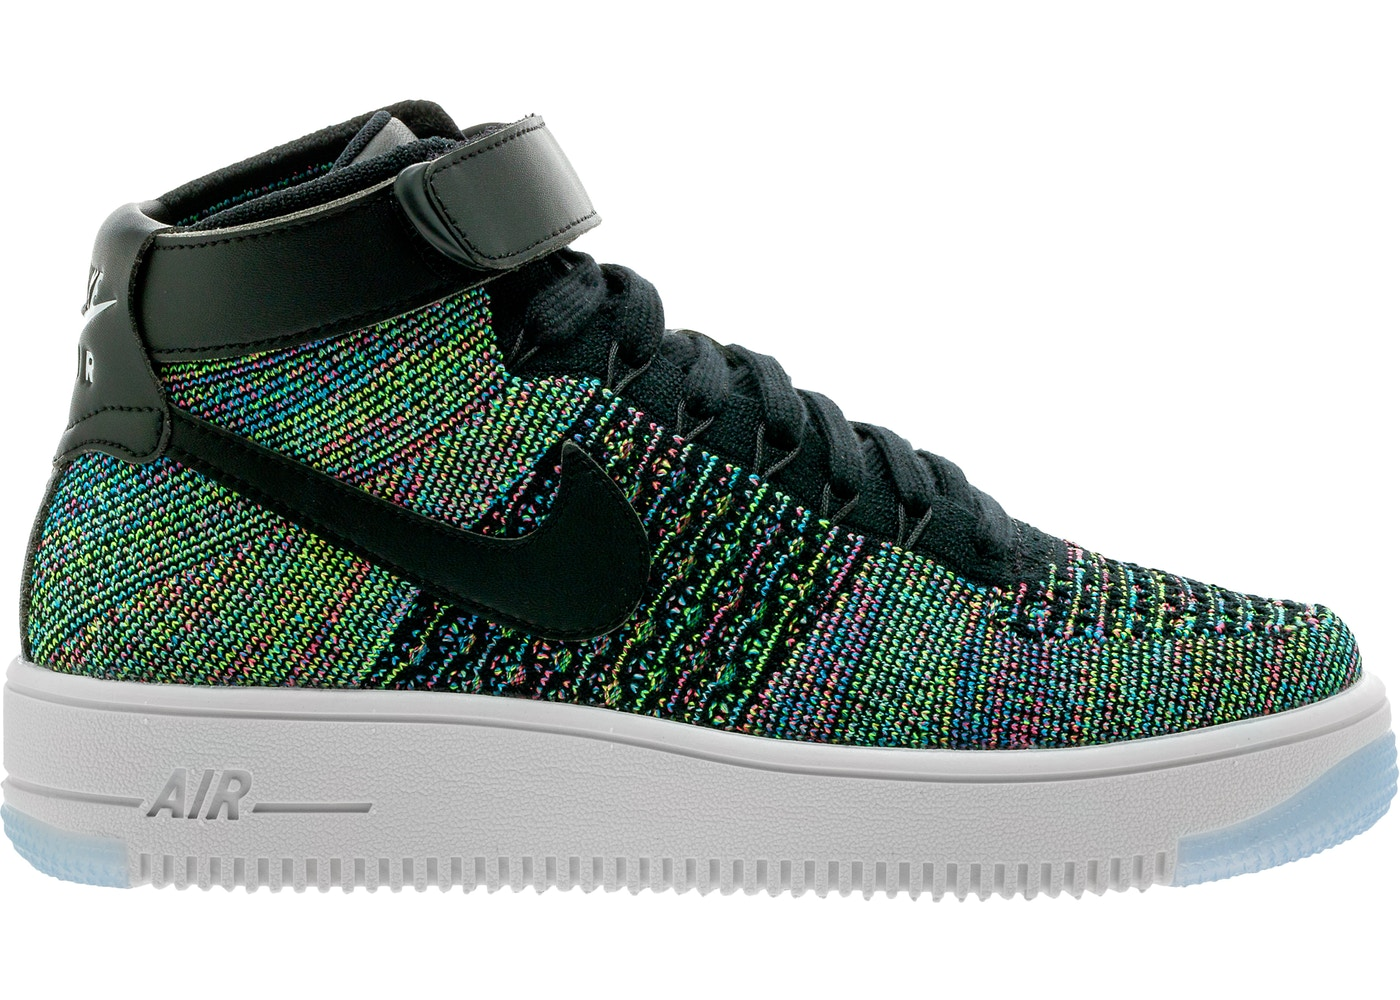 Color Multi Mid Force Air Ultra Flyknit 0gs 1 2 34R5jqAL